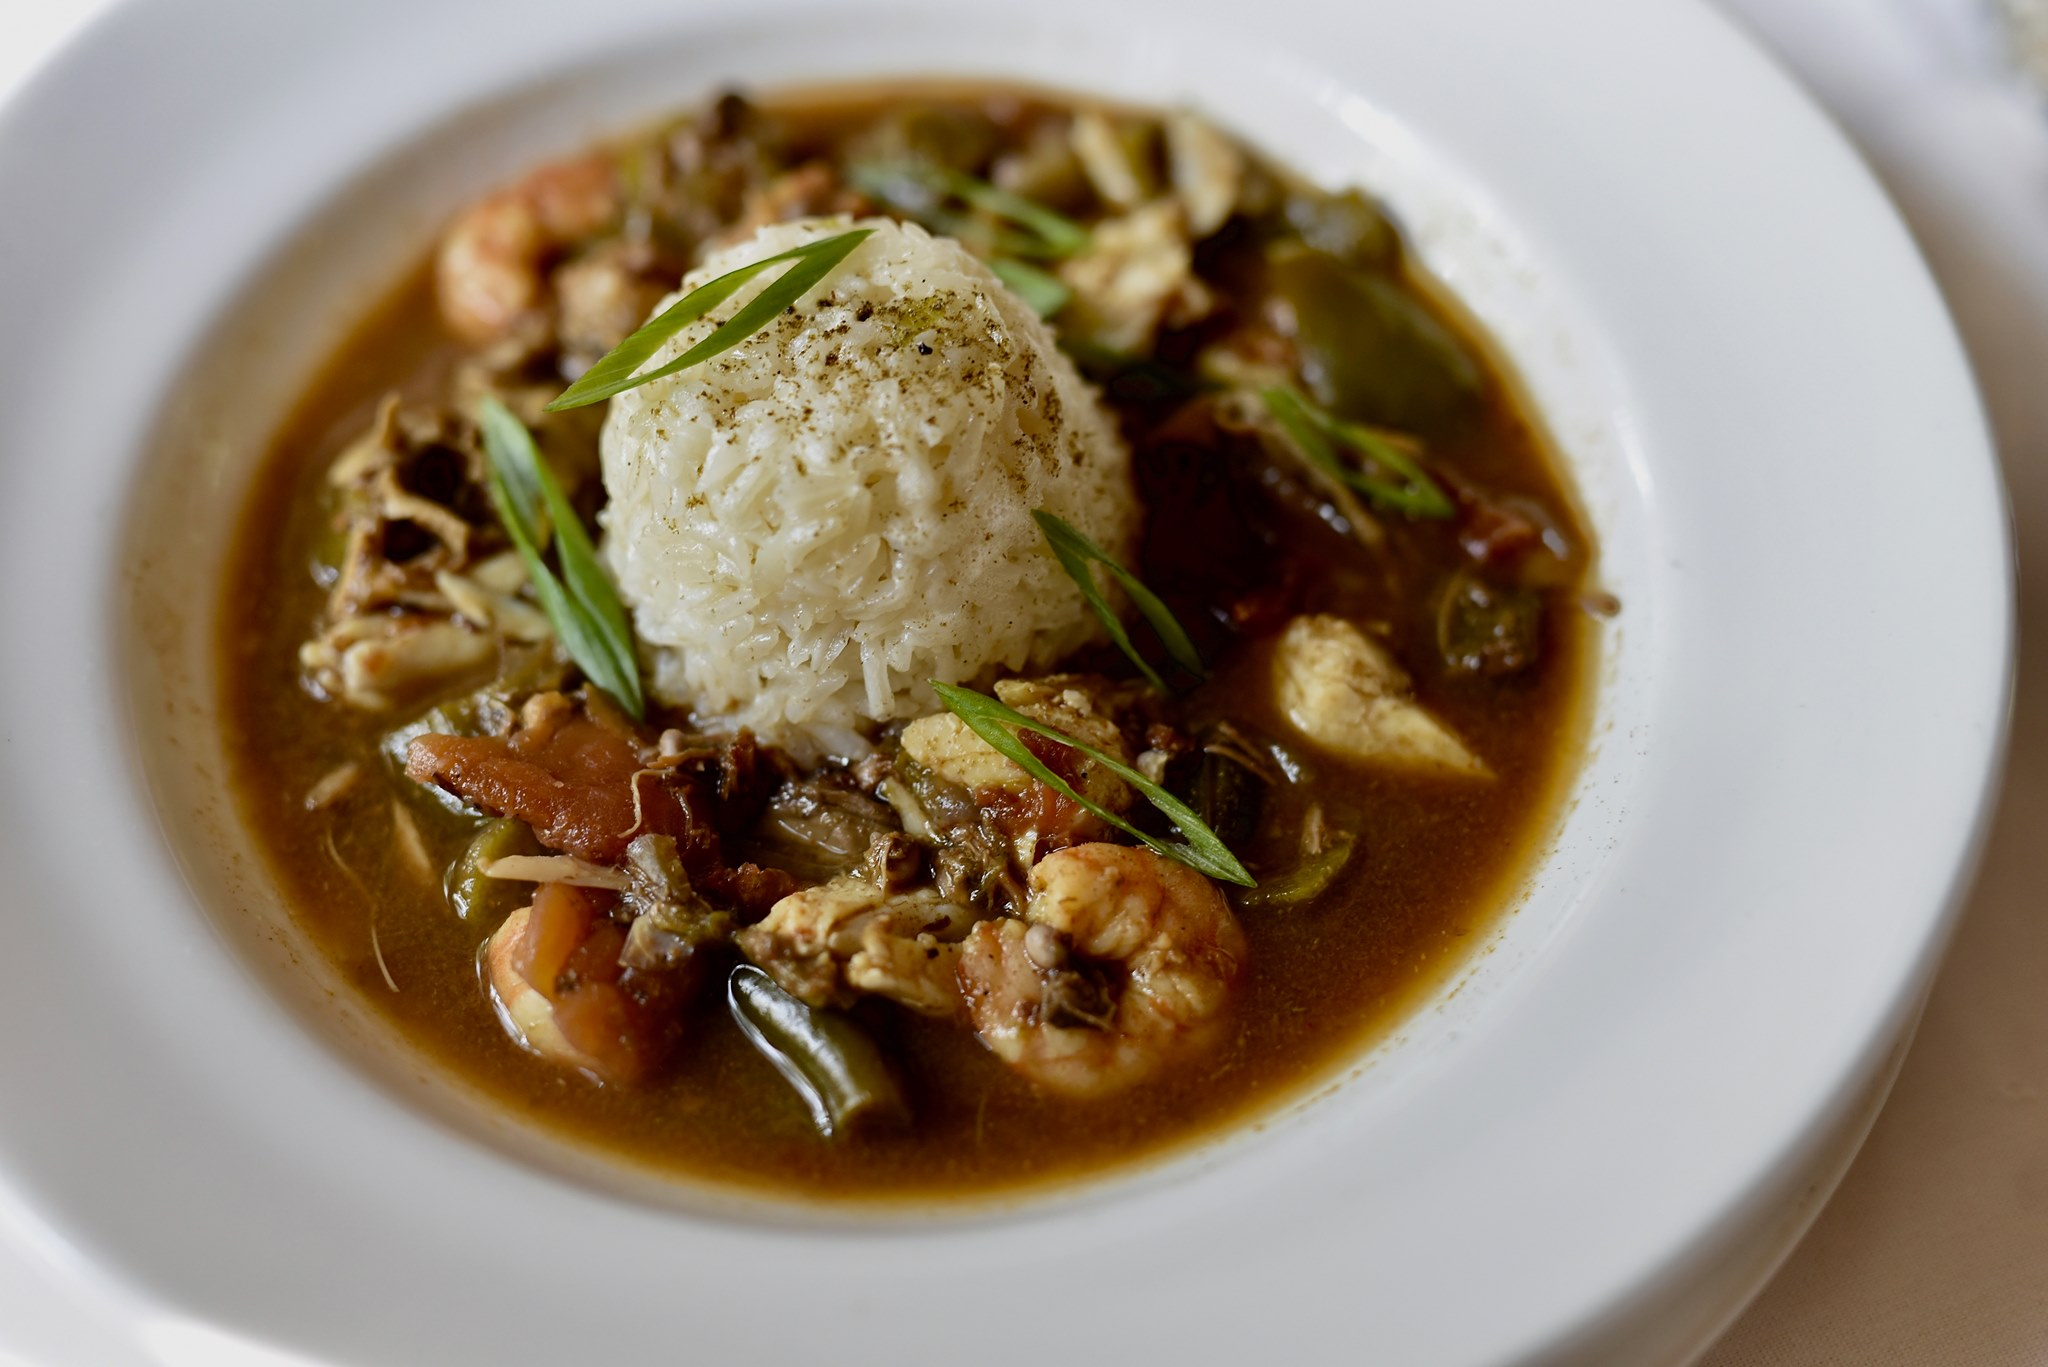 A white bowl of dark roux gumbo with a scoop of white rice in the center